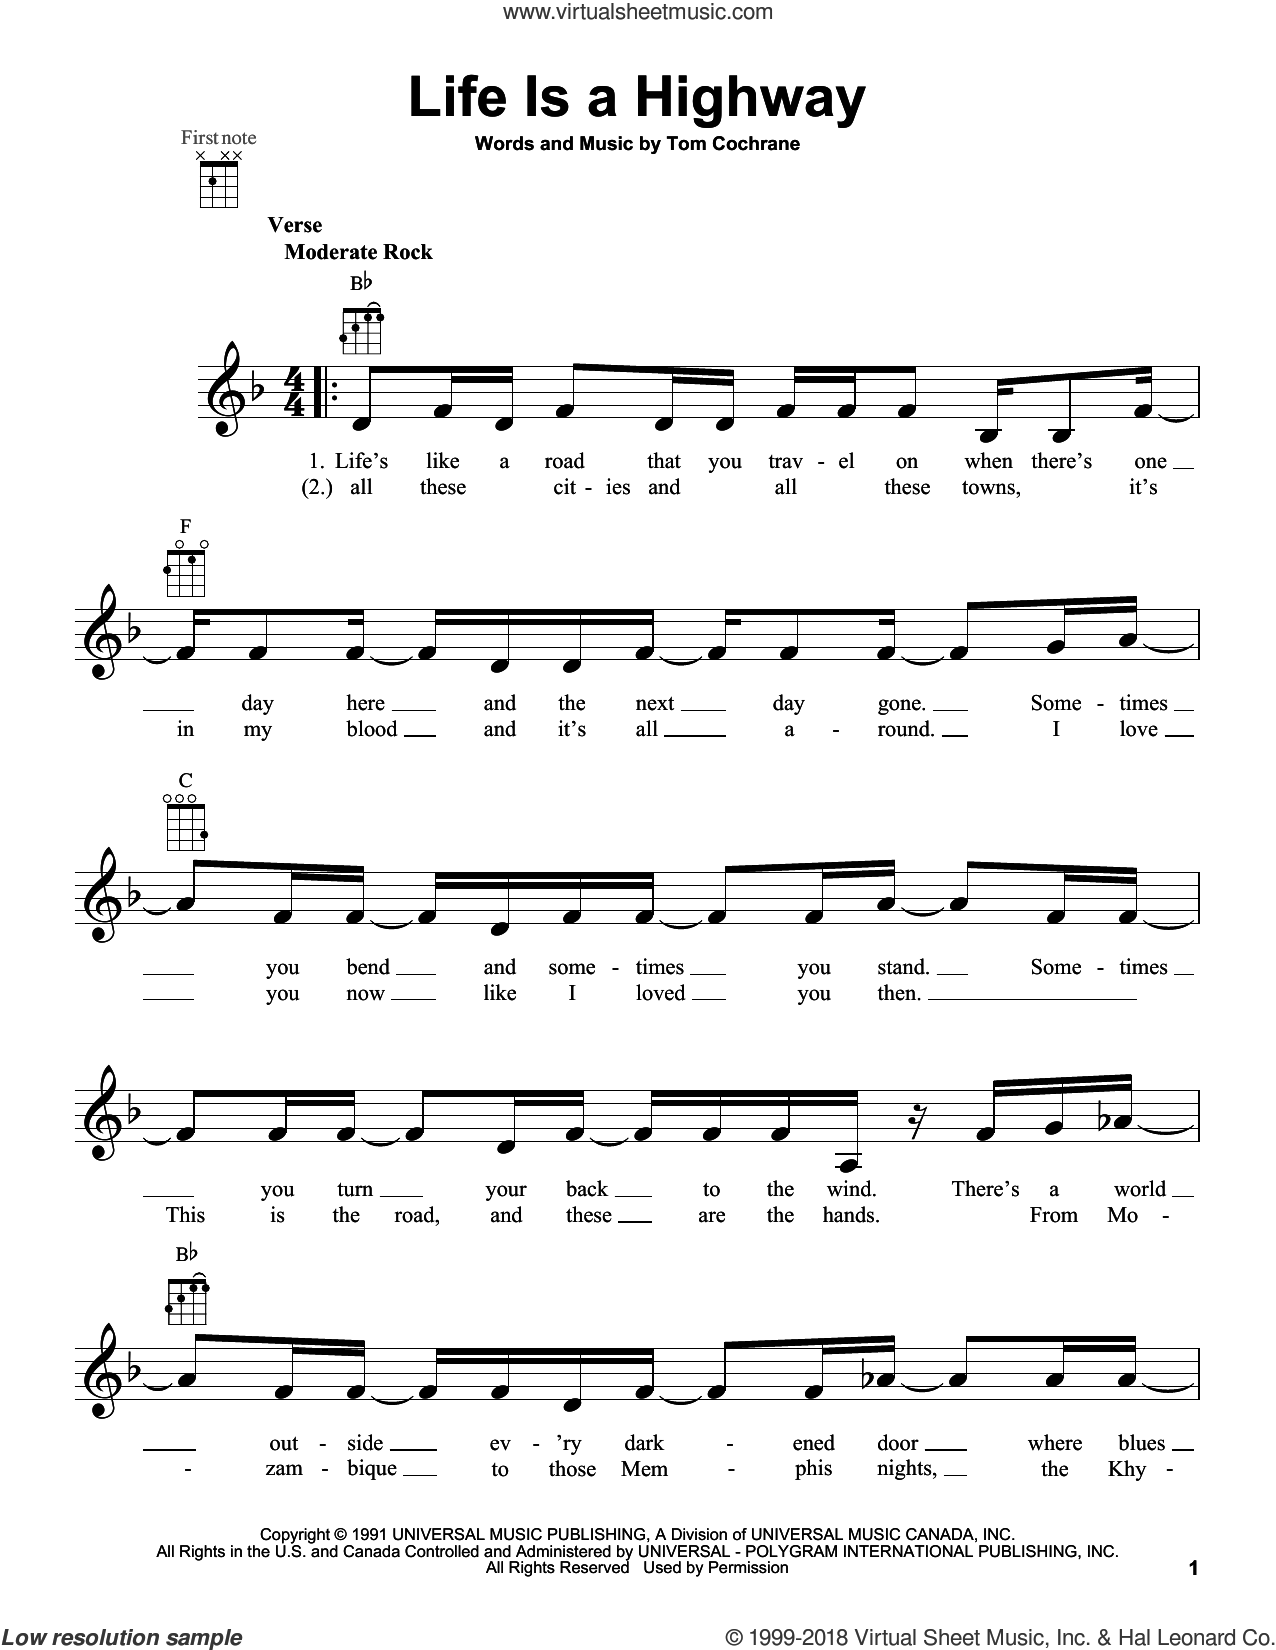 Life Is A Highway sheet music for ukulele by Tom Cochrane